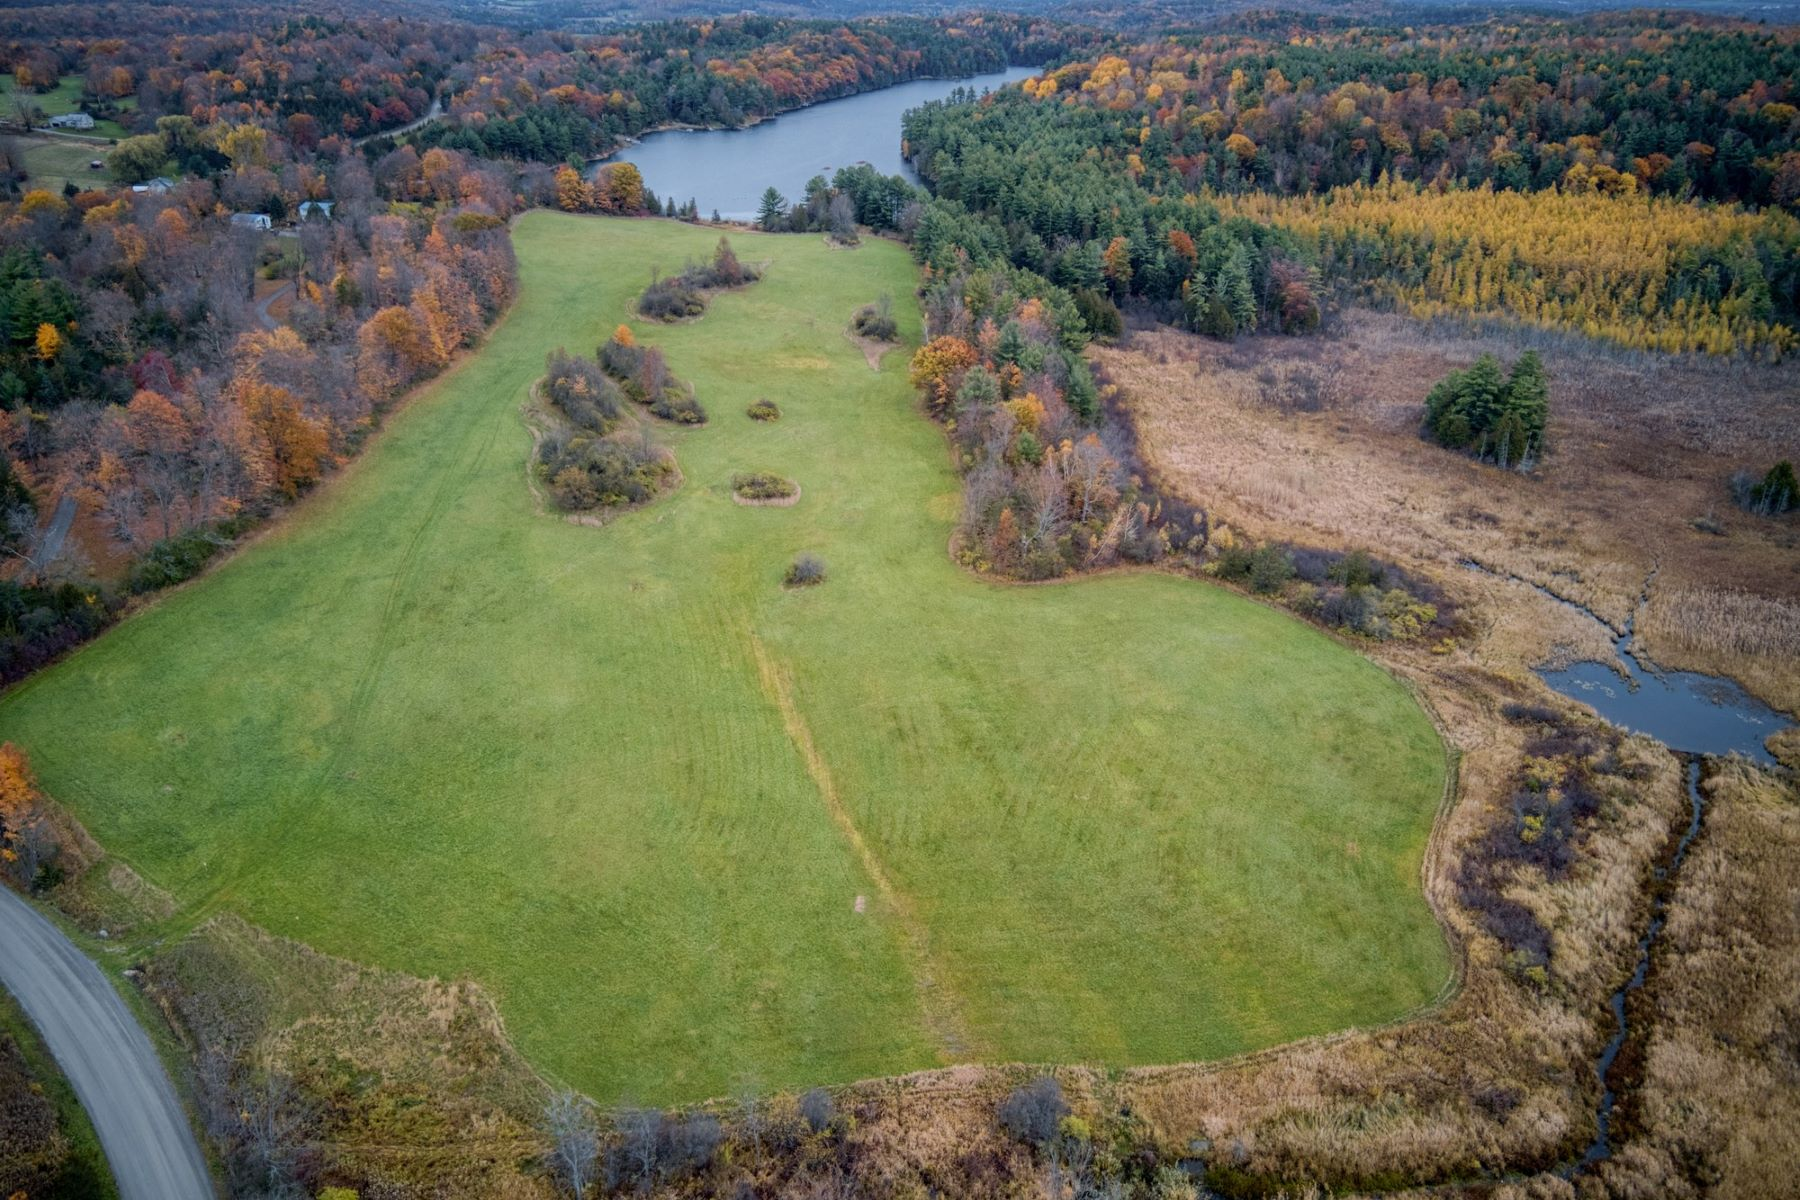 Land for Sale at Vermont Land with Long Pond Waterfront Lot 4 Beebee Hill, 4 Milton, Vermont 05468 United States